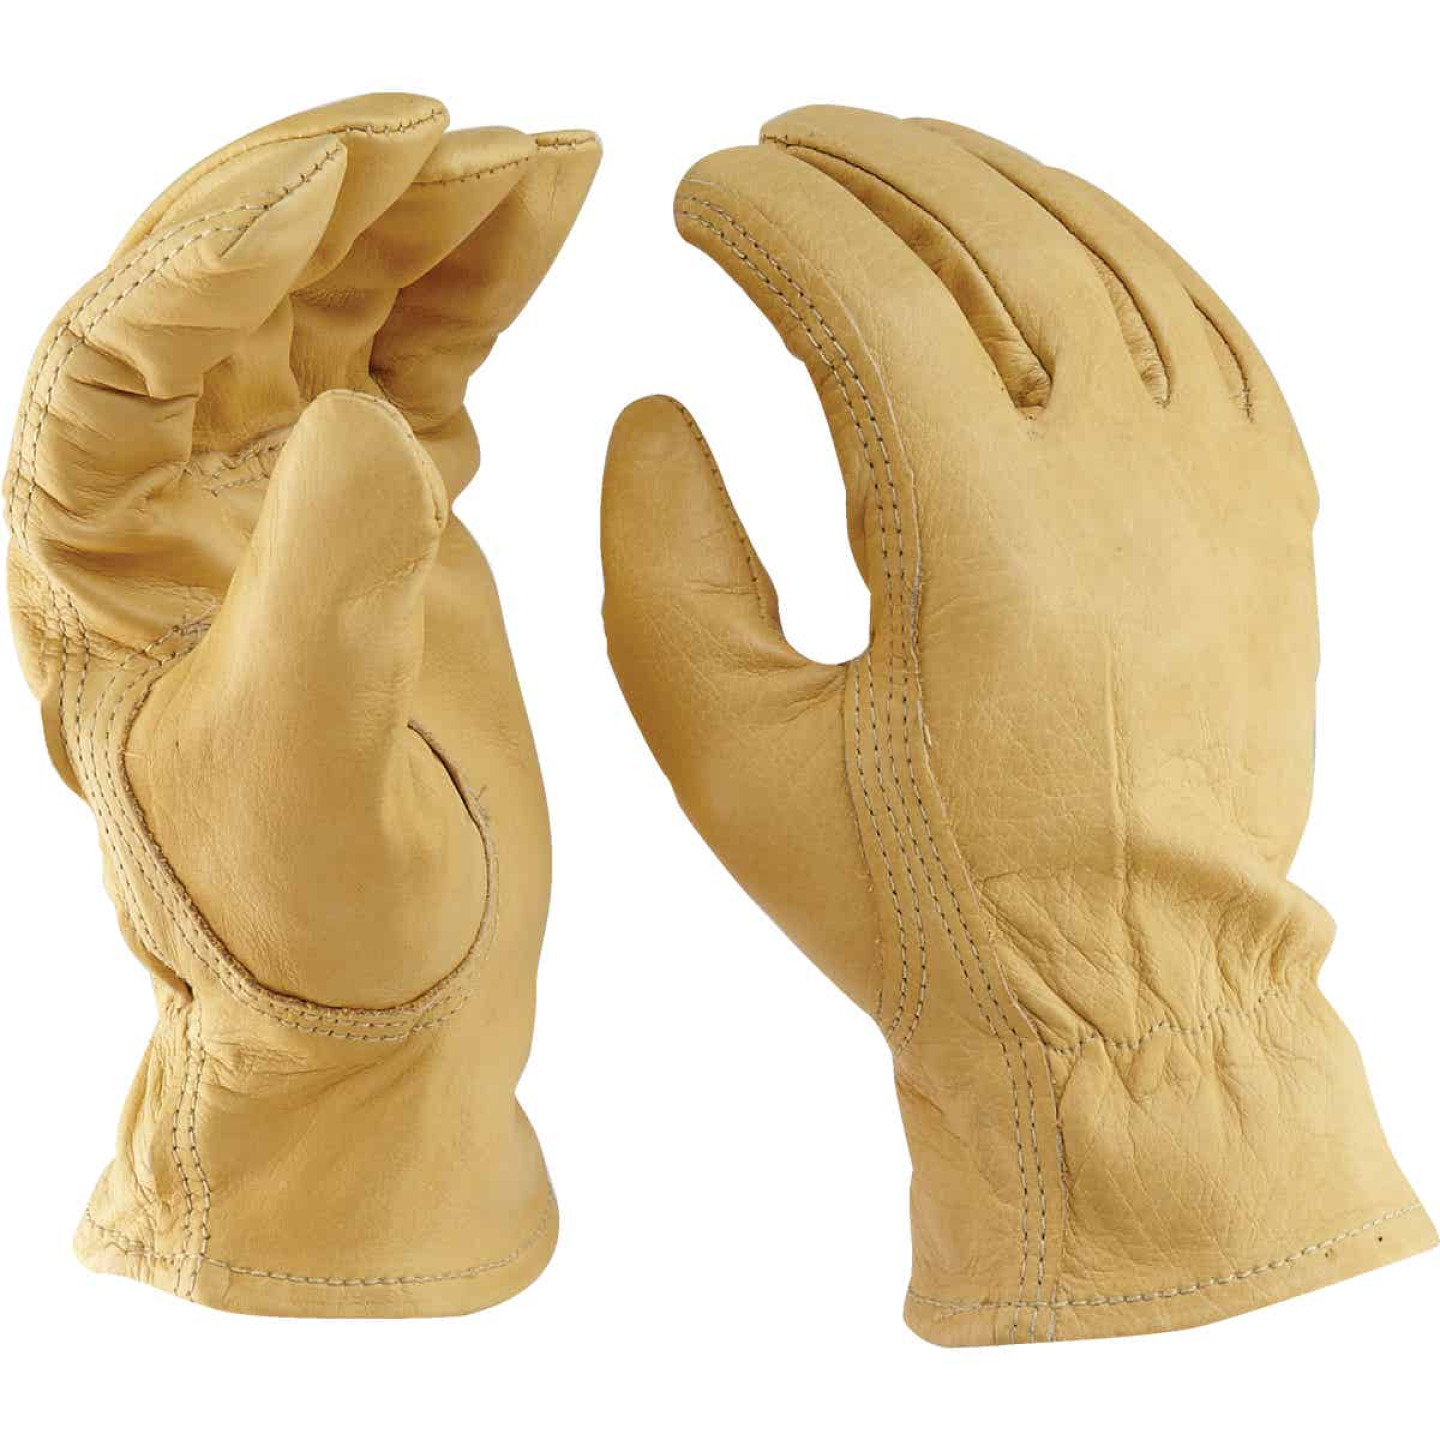 Do it Best Men's Large Top Grain Leather Work Glove Image 8